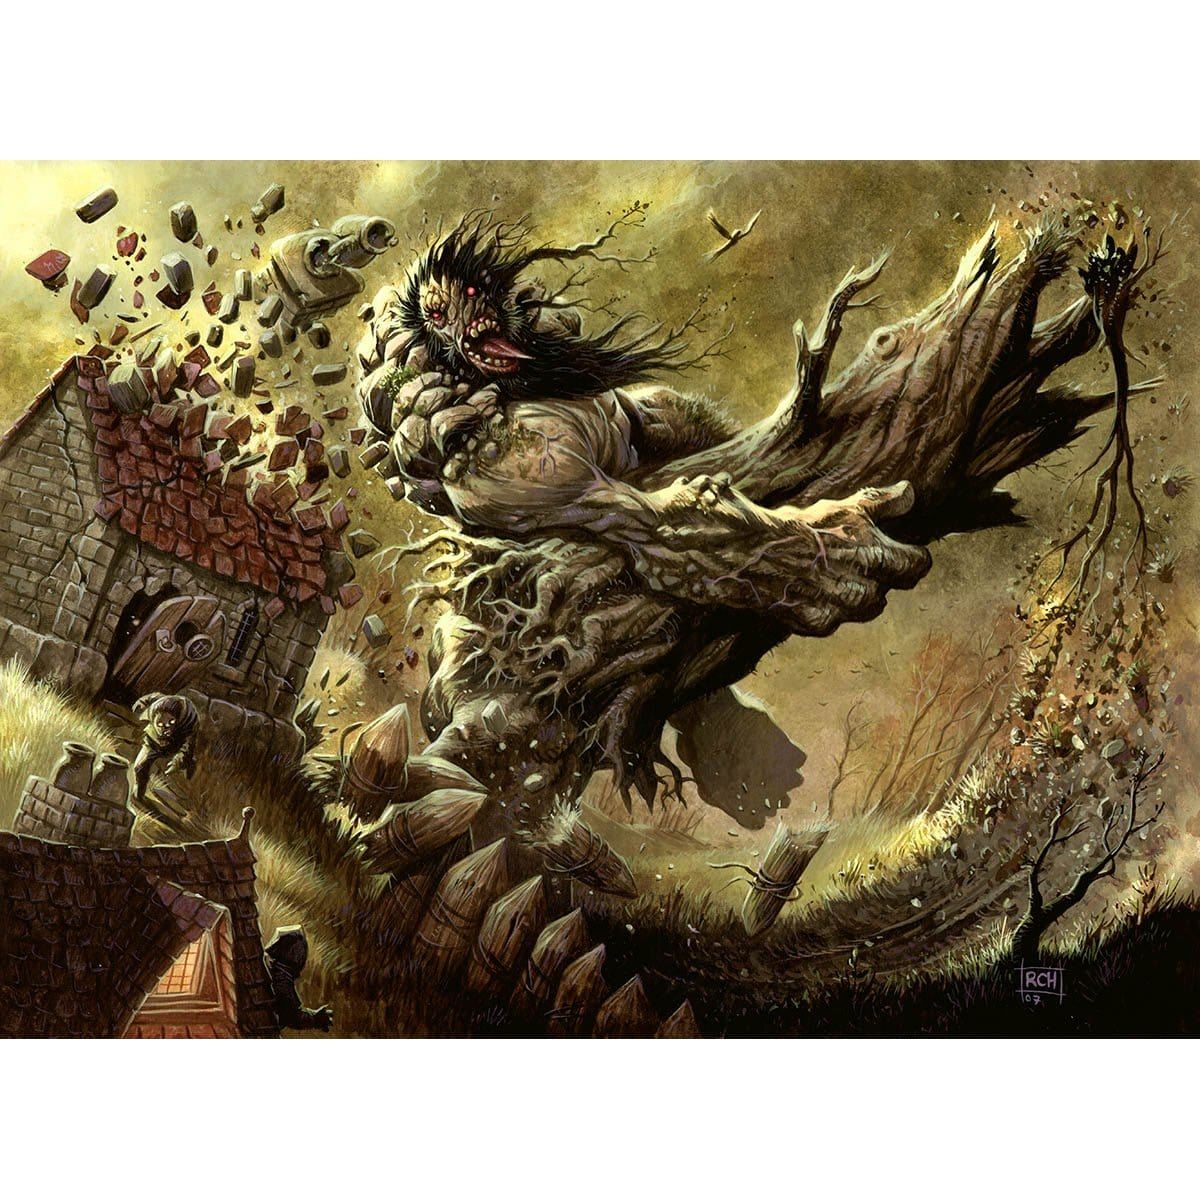 Furystroke Giant Print - Print - Original Magic Art - Accessories for Magic the Gathering and other card games